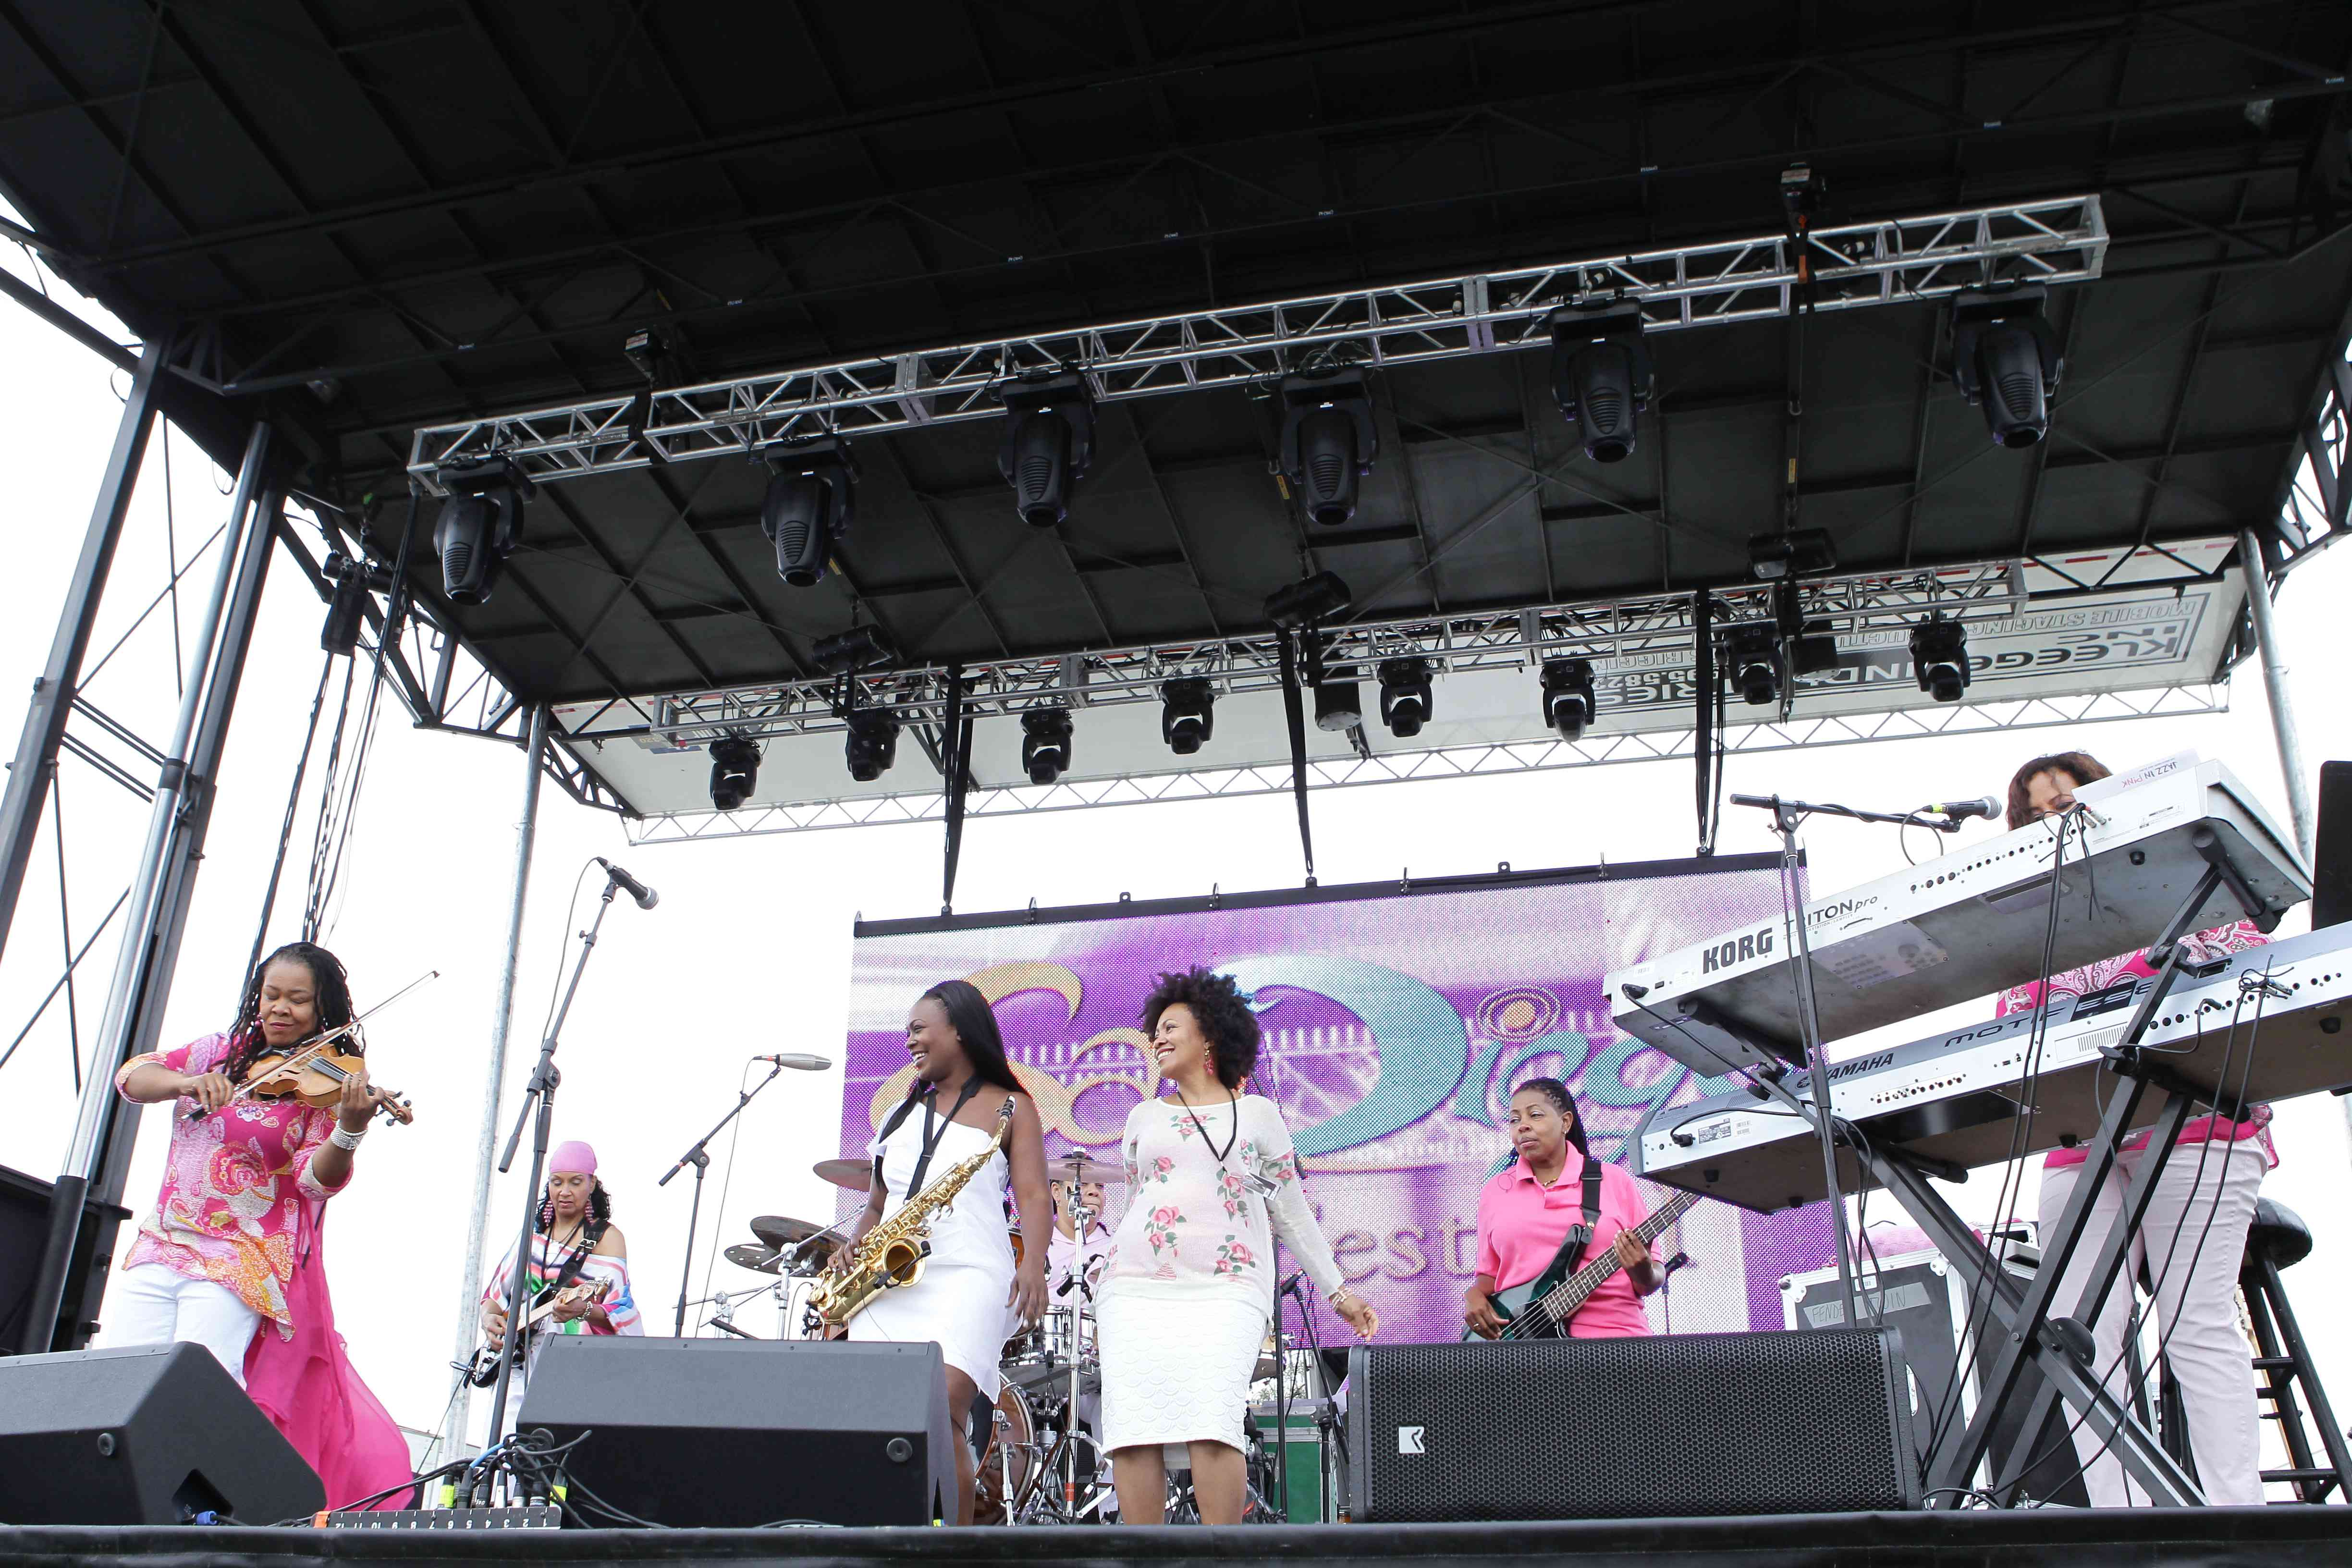 Women perform on stage at the San Diego Jazz Festival.